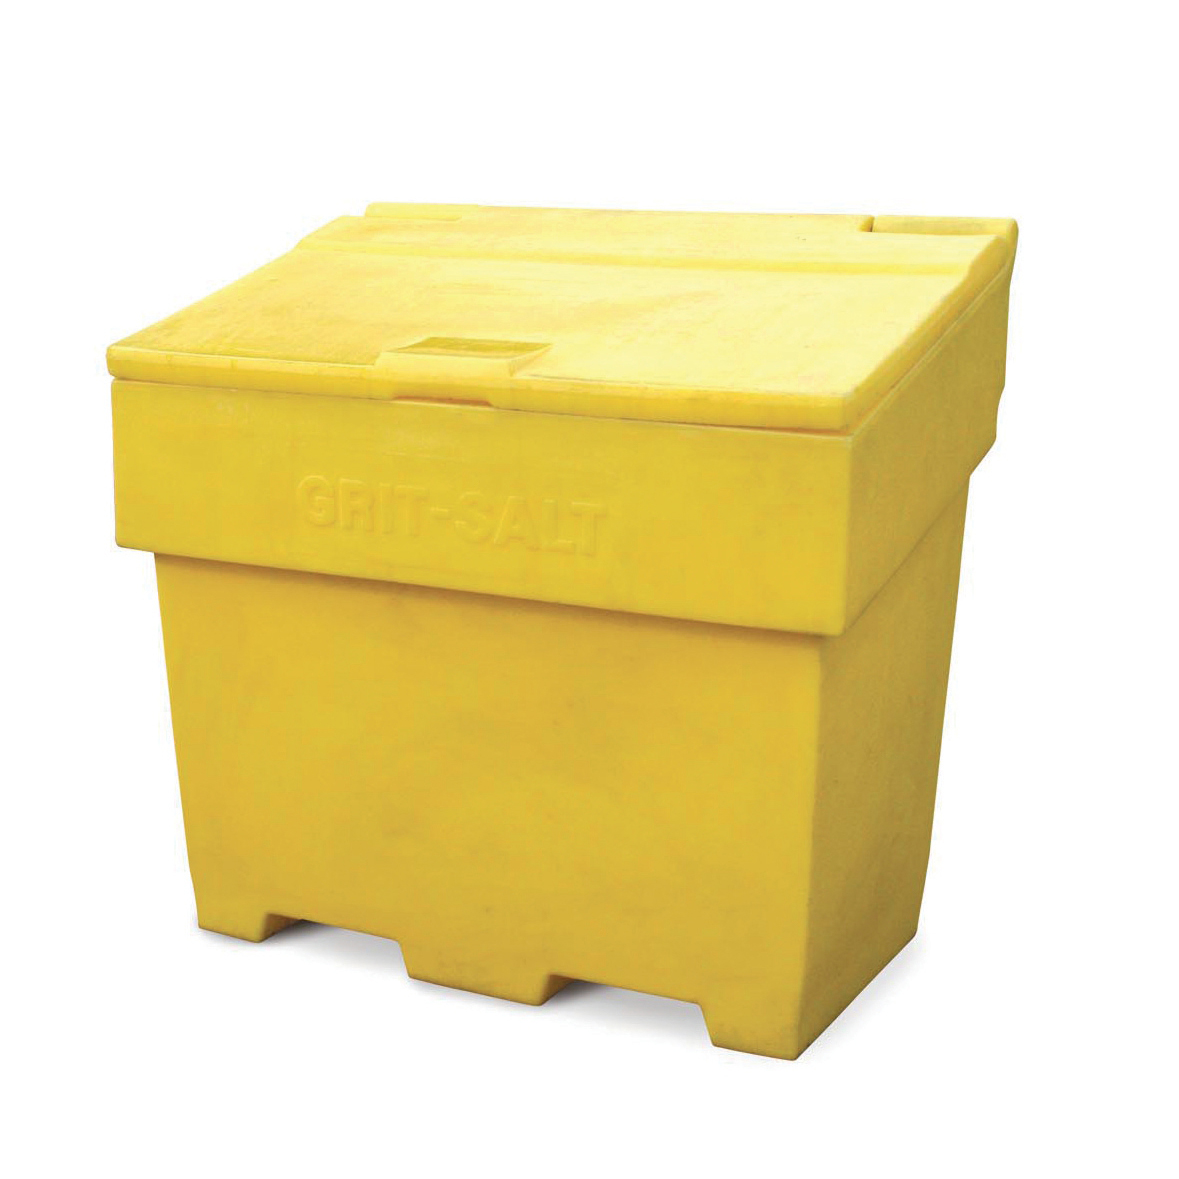 Image for Bentley Grit and Salt Bin Polyethylene Capacity 400kg Weight 22kg Ref SPC/GRIT400